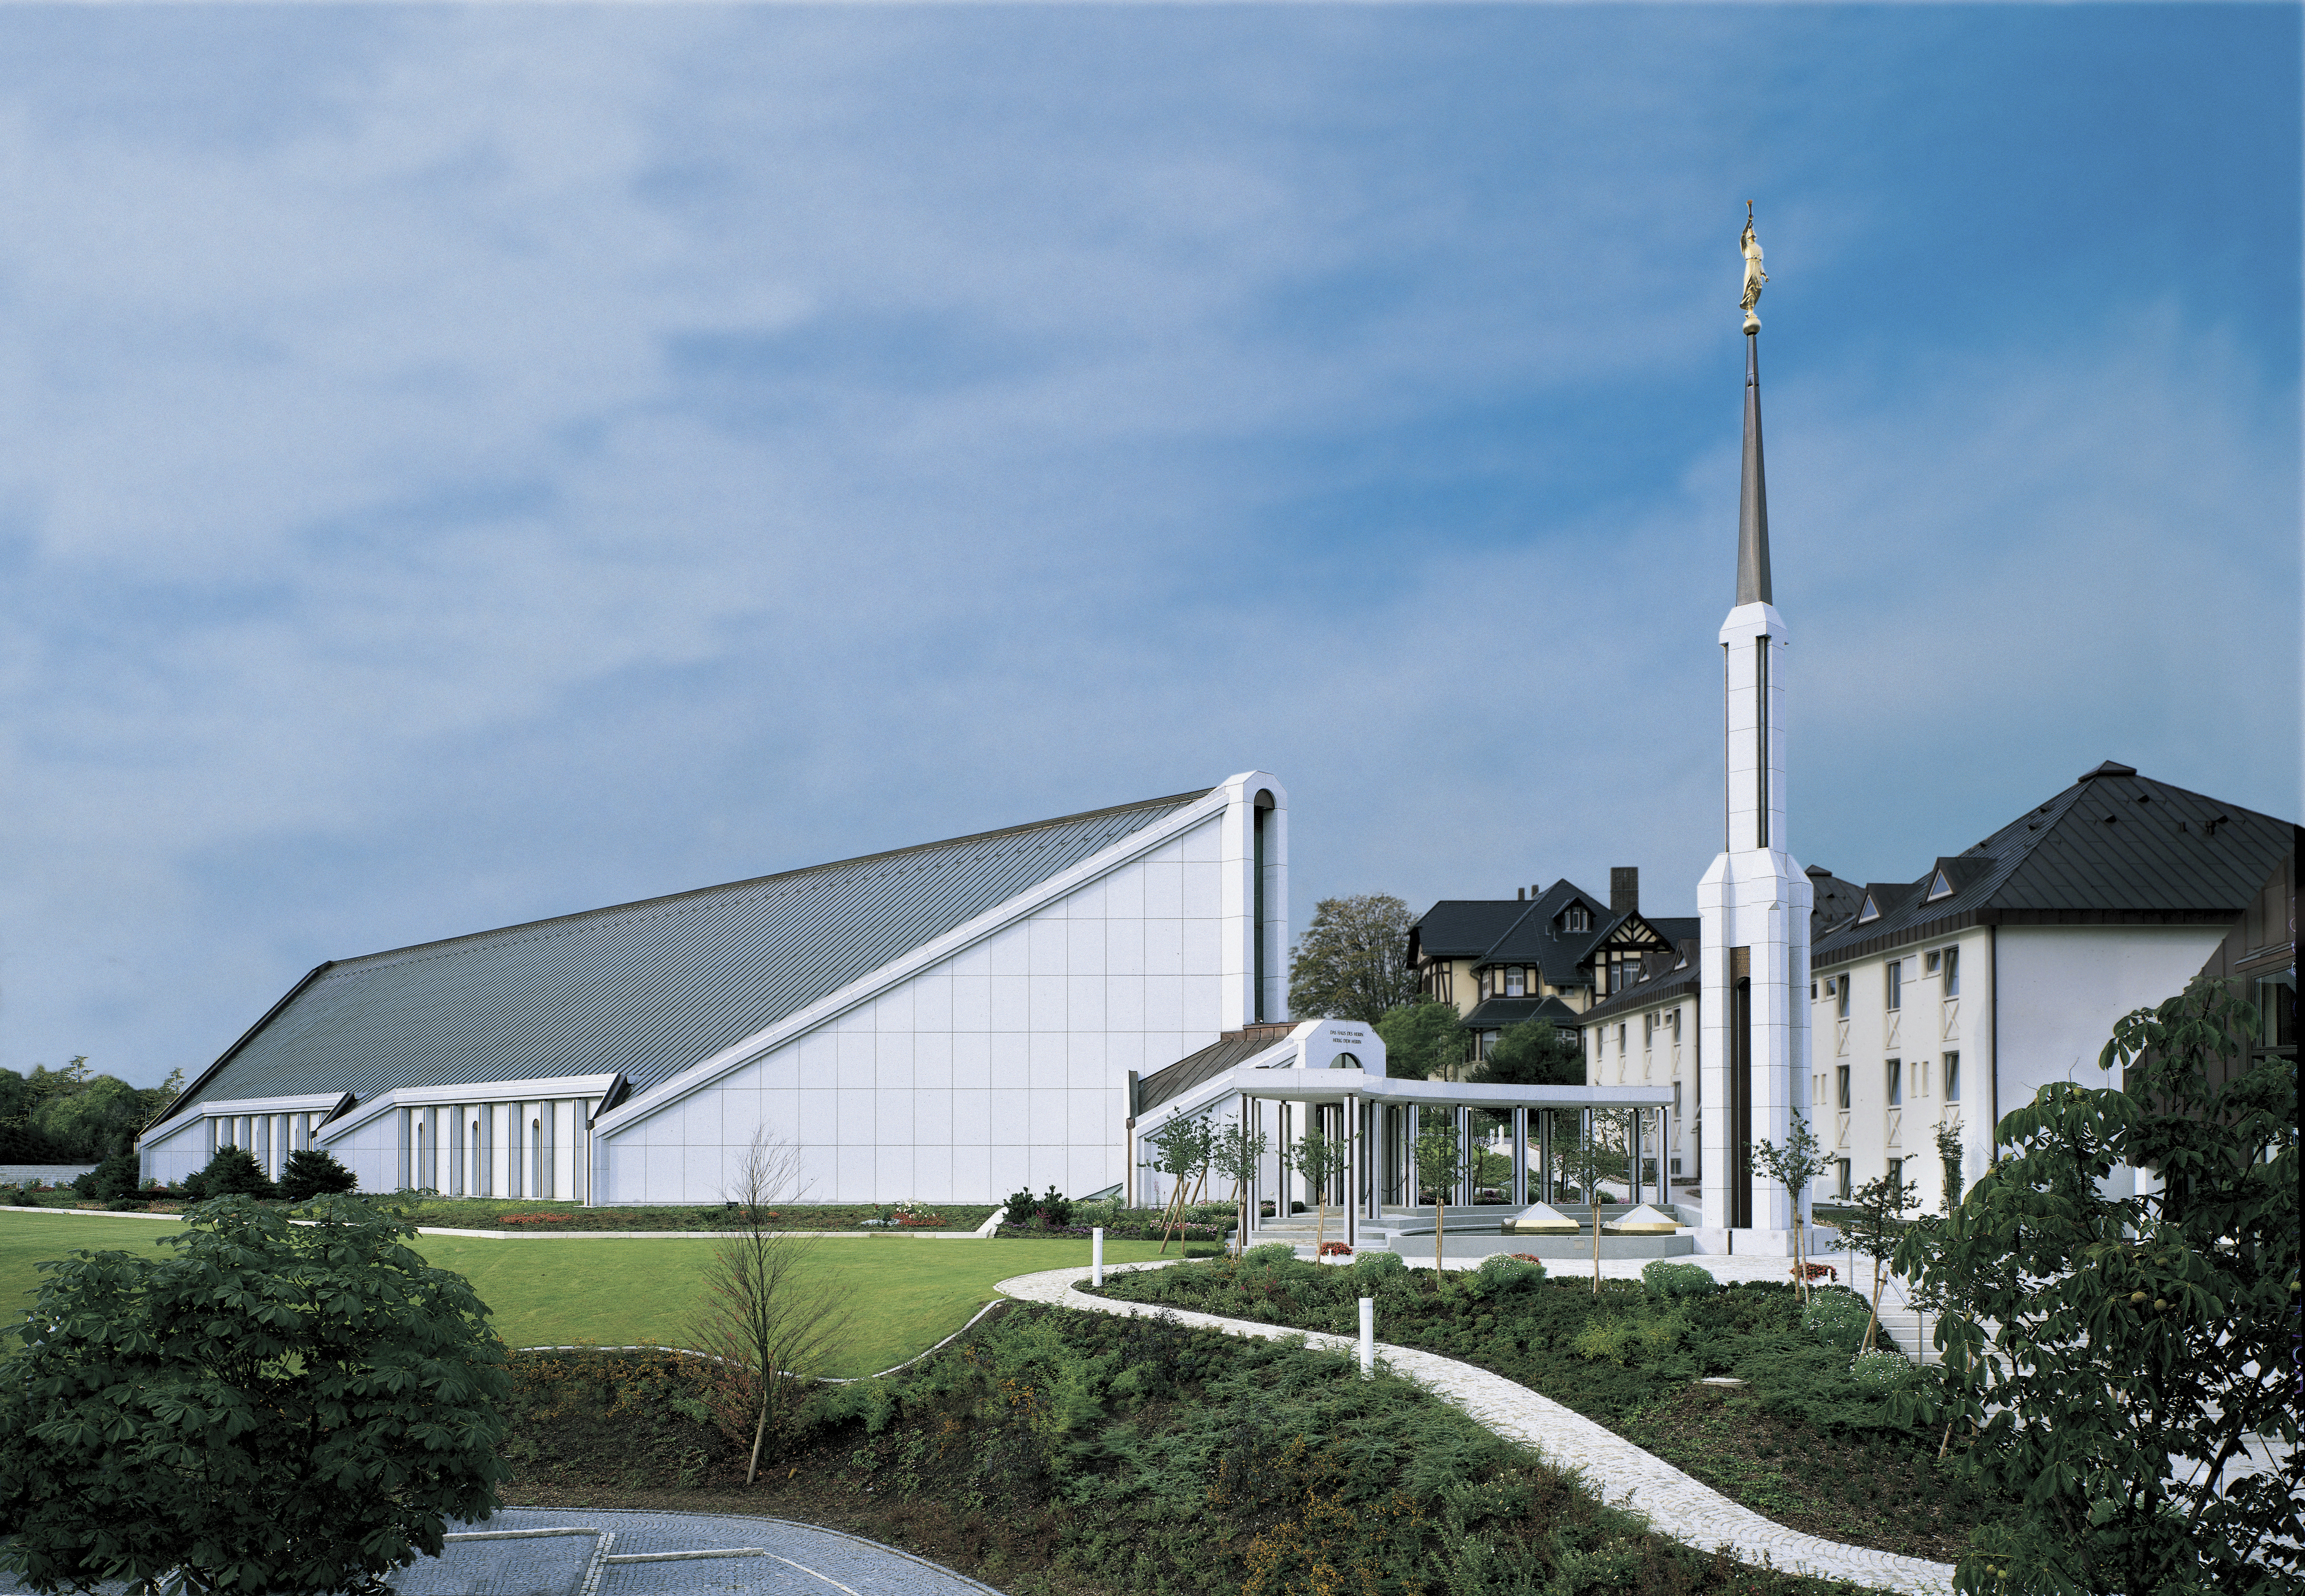 An exterior view of the Frankfurt Germany Temple.